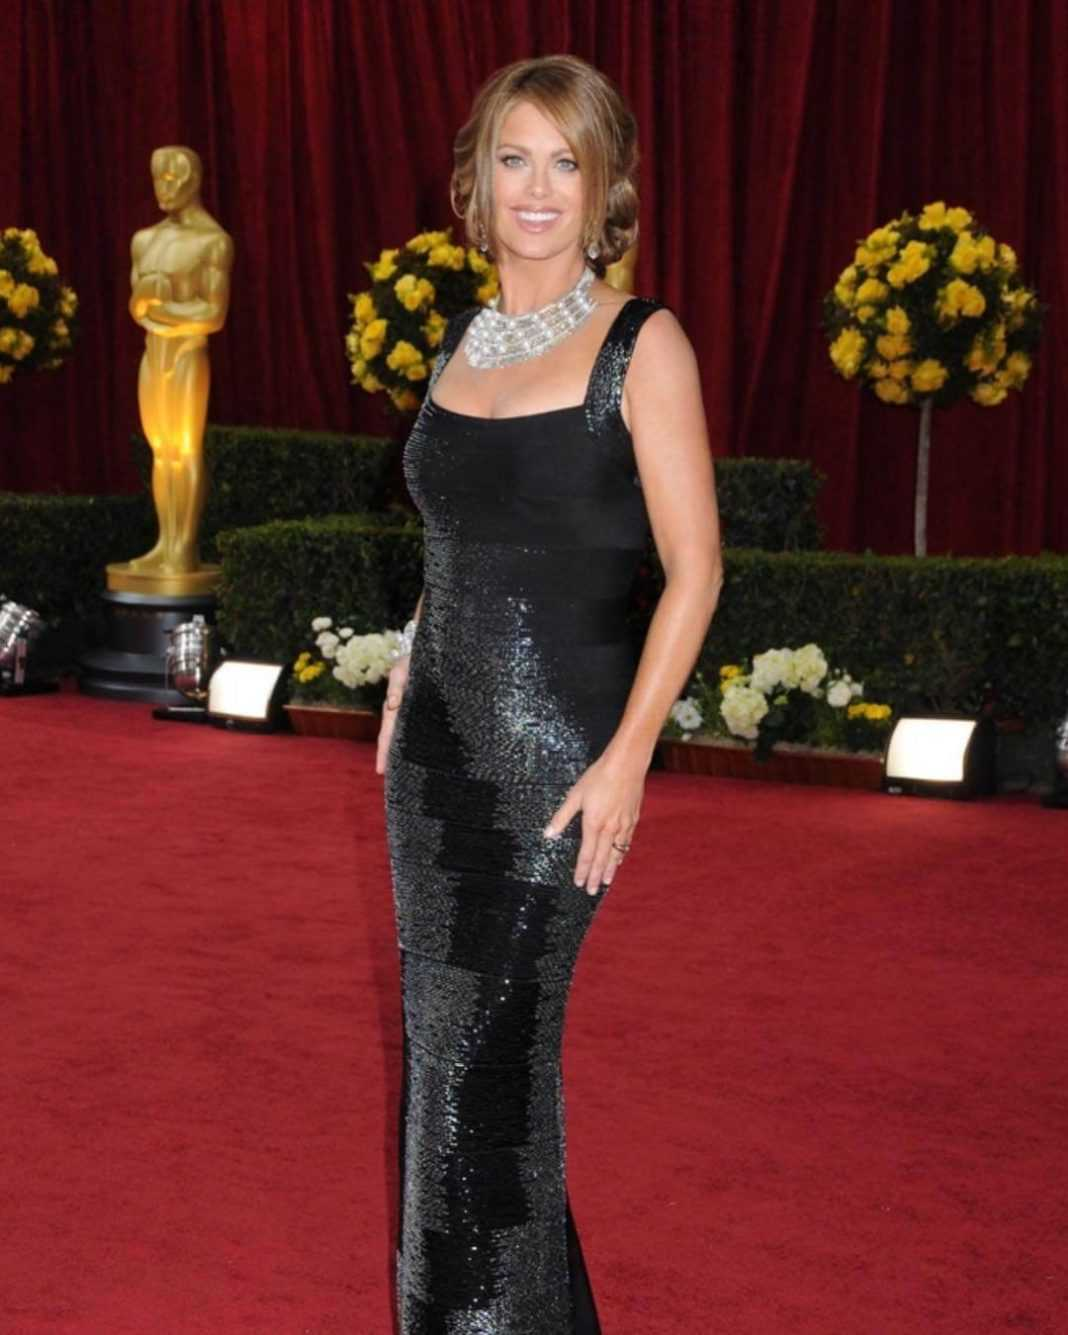 49 Kathy Ireland Nude Pictures Will Drive You Quickly Captivated With This Attractive Lady ...